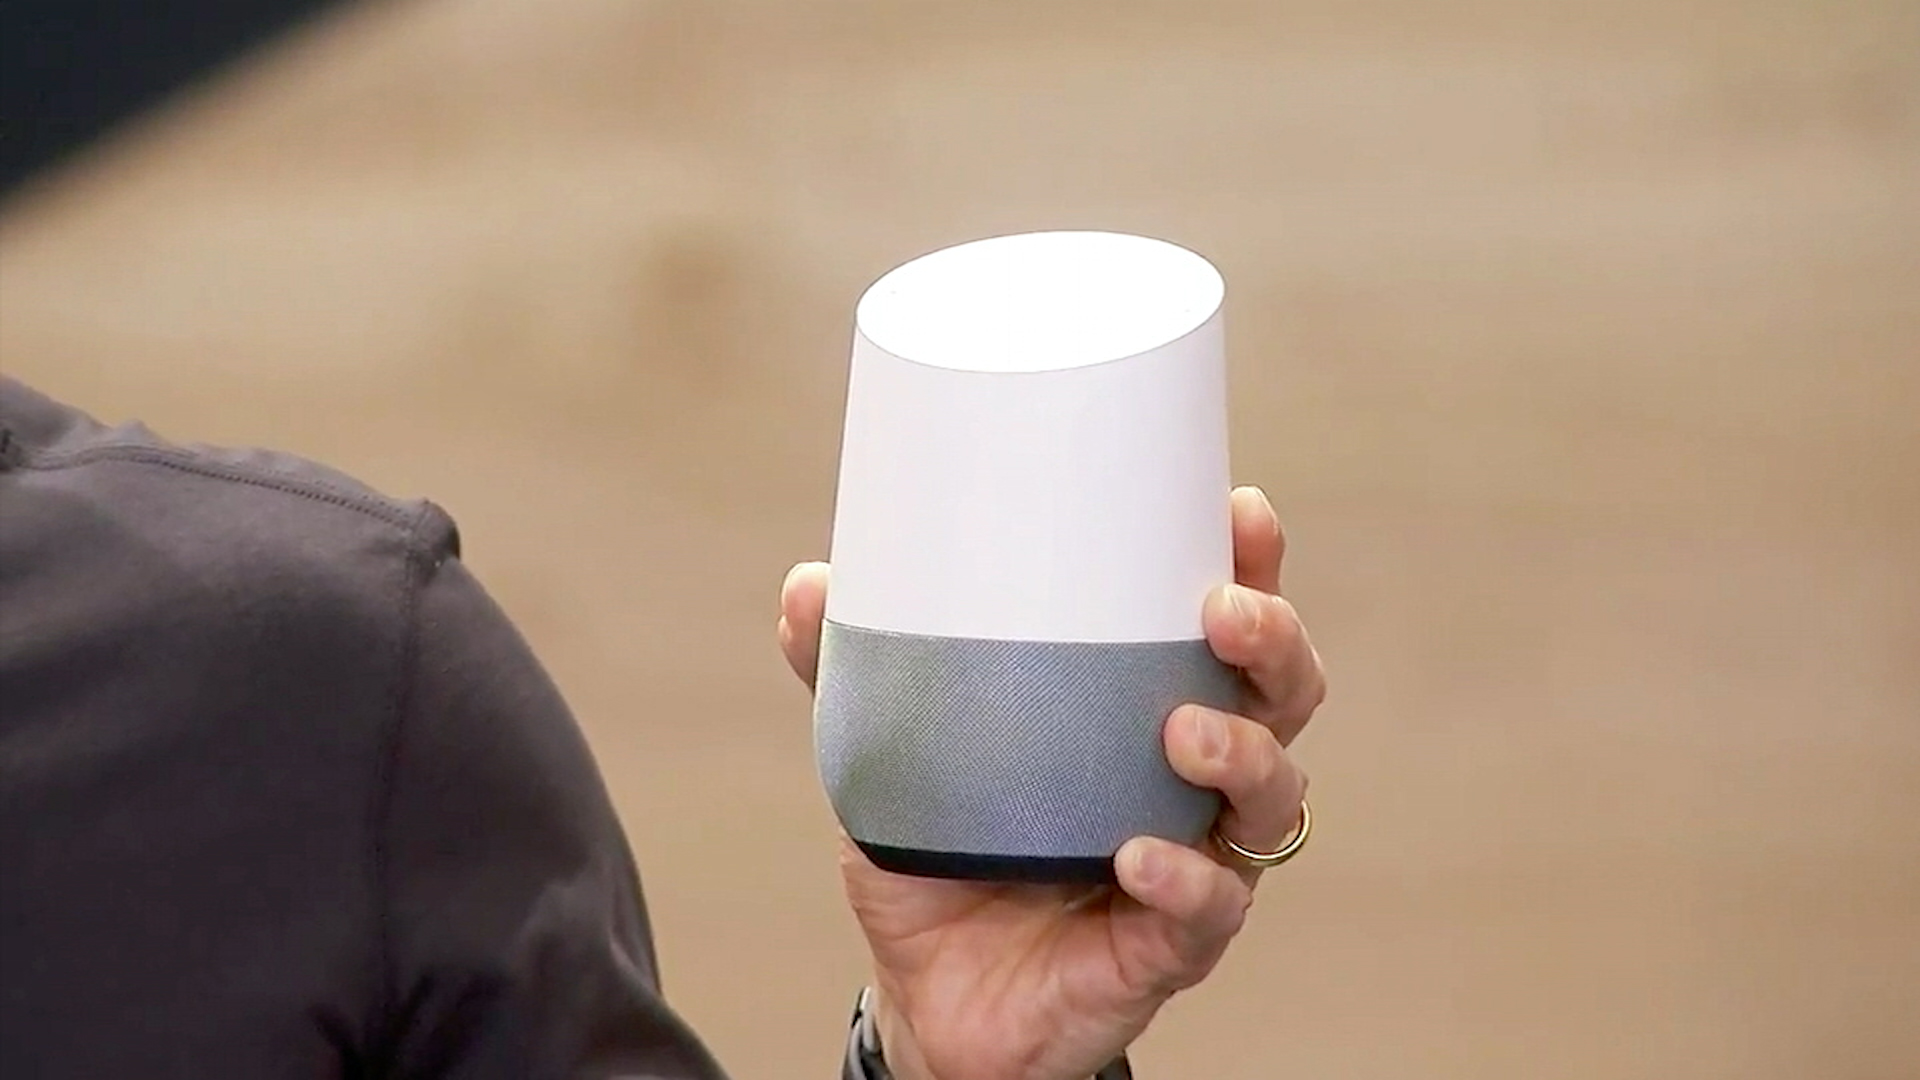 Video: Look out, Alexa, here comes Google Home